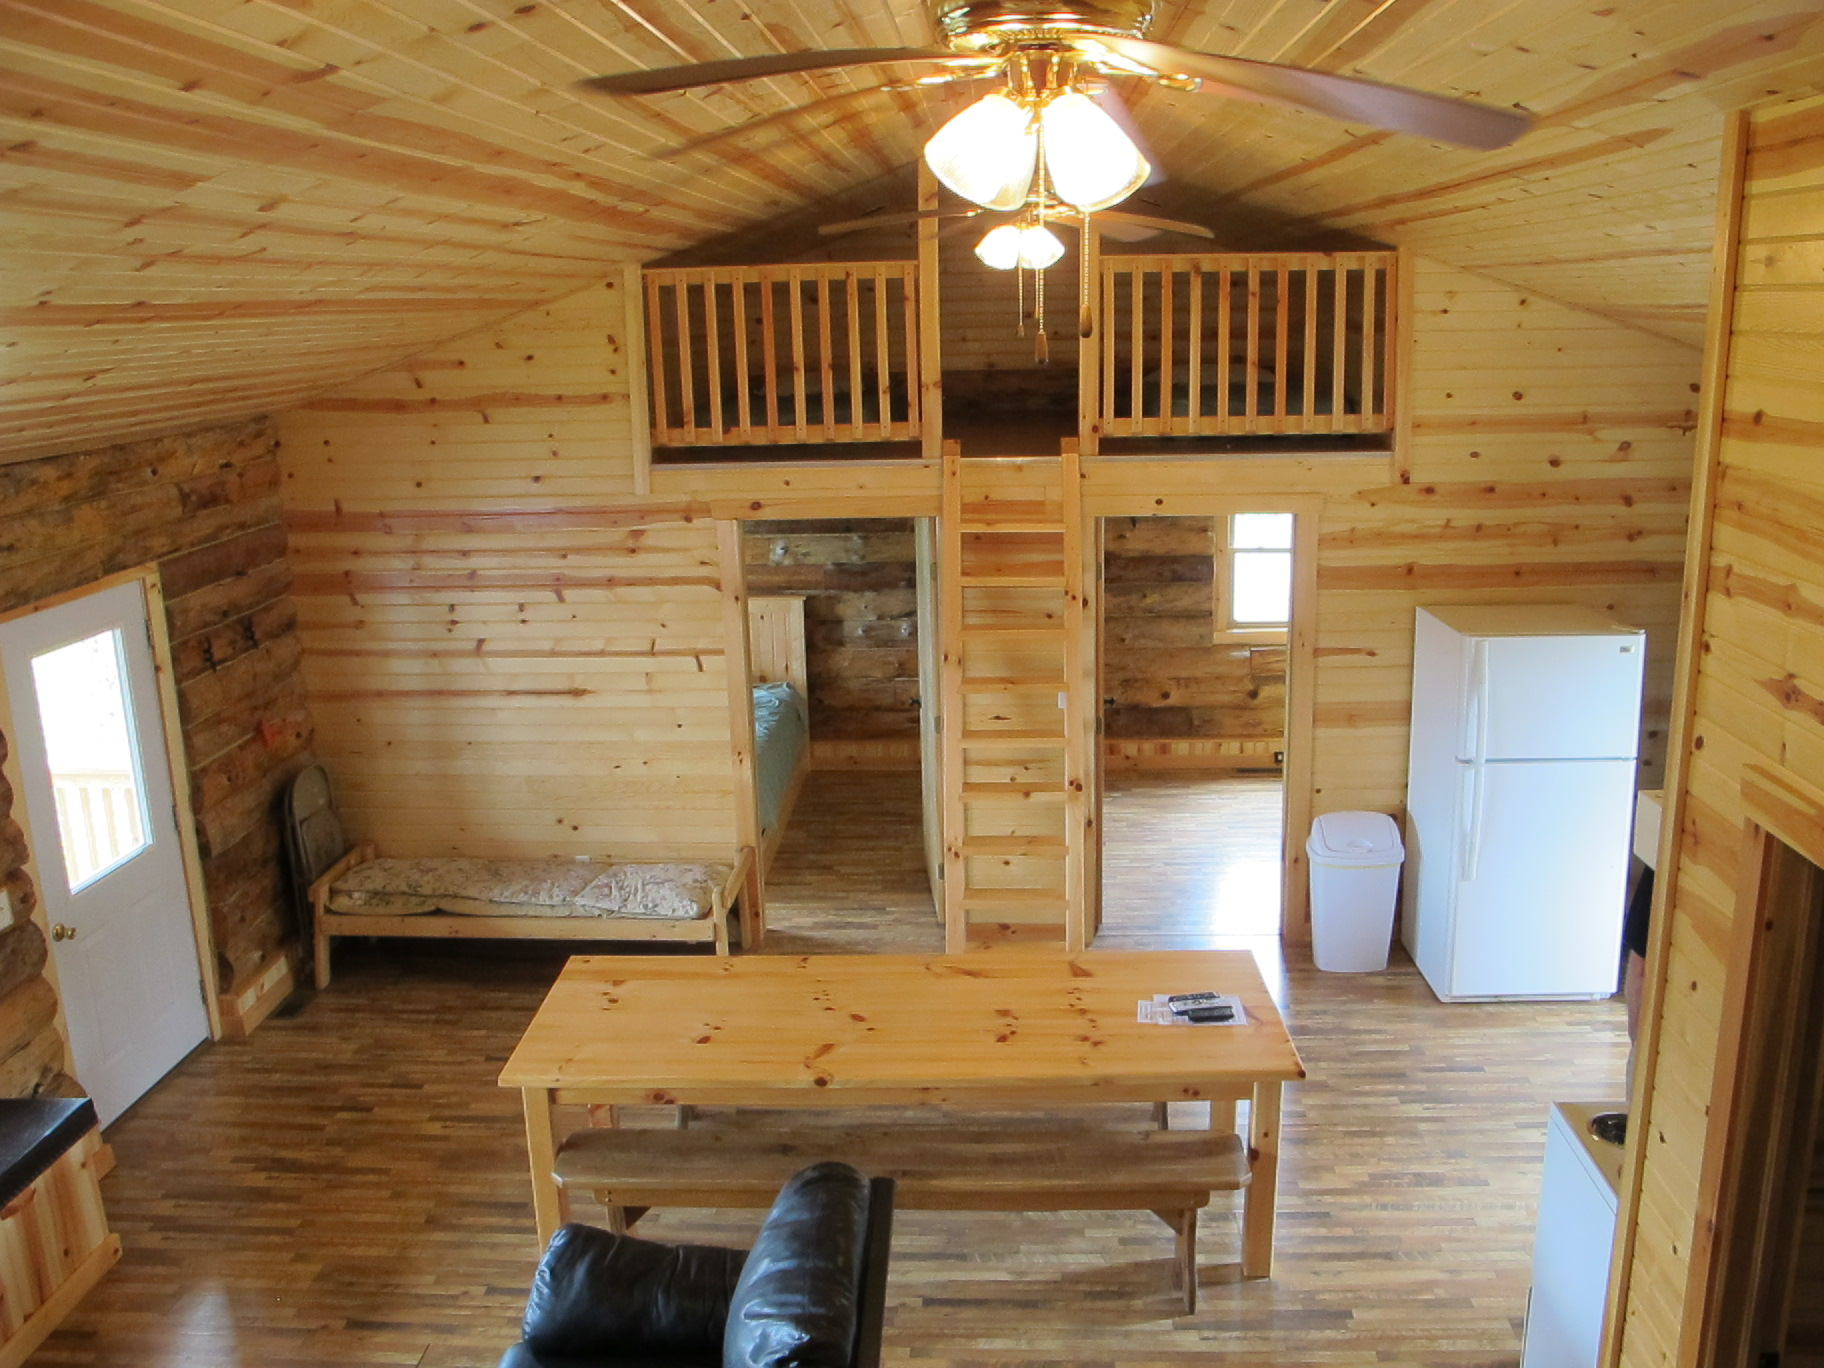 cheap in private suite cabin best lake of mountain cabins park ohio lodge hope rentals media state pics majestic sleeps attached